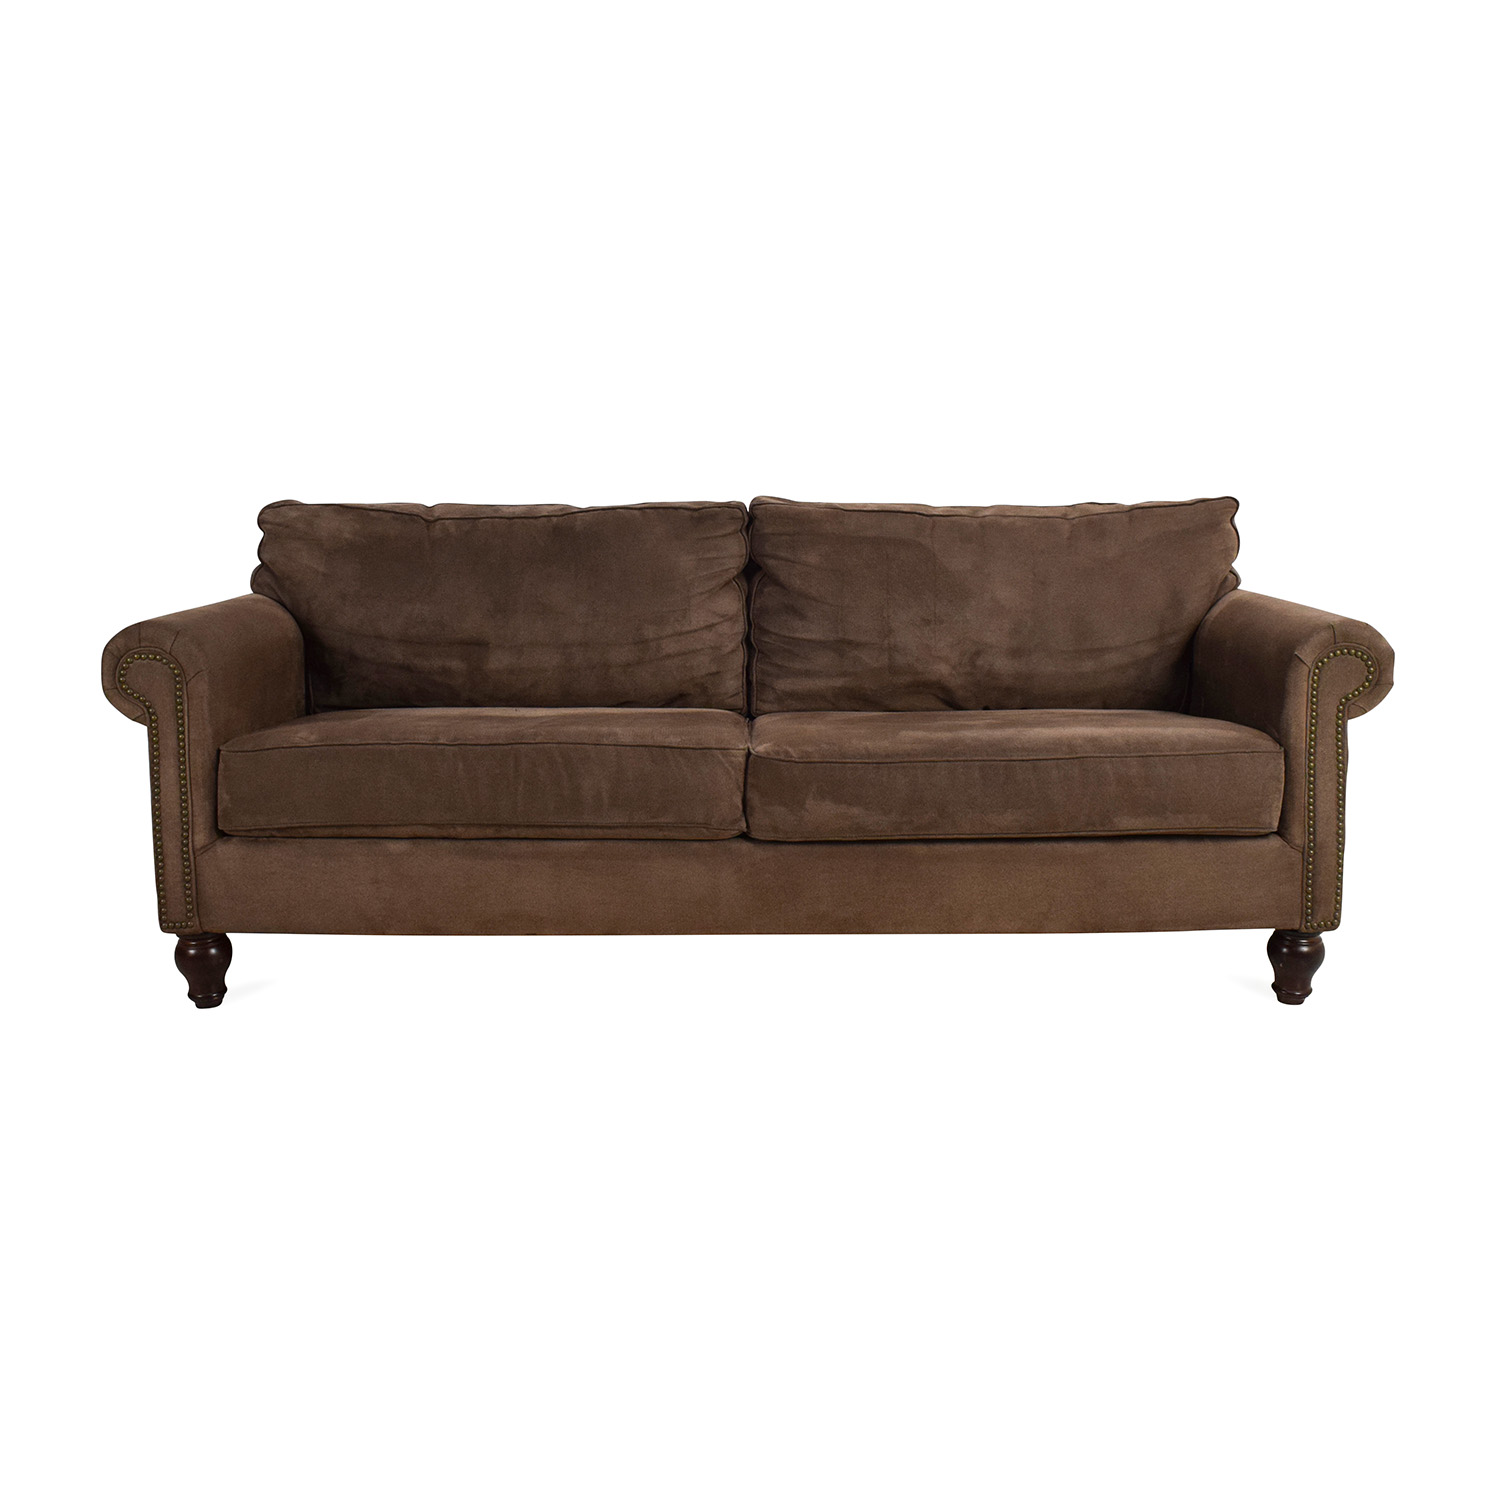 Pier One Imports Sofas Pier 1 Couches Madebyni Co Thesofa